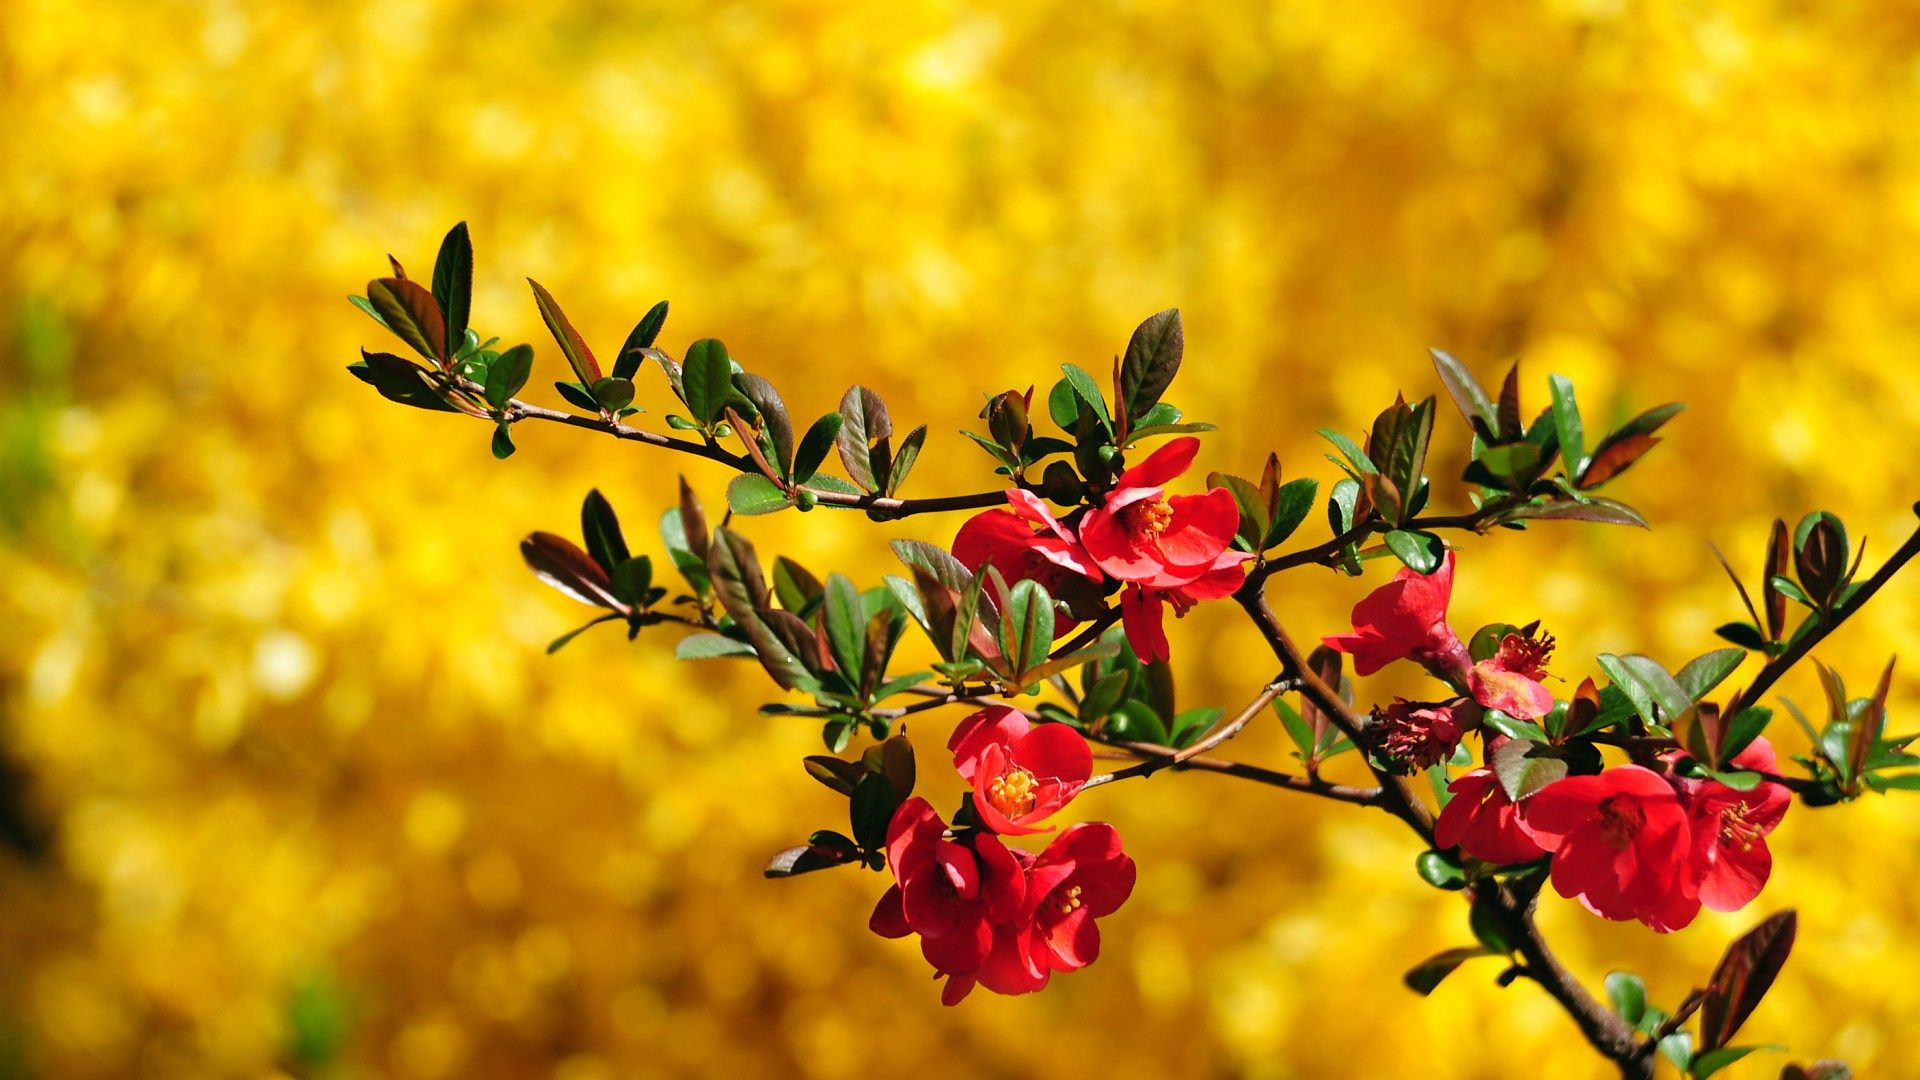 Wallpaper download beautiful - Free Download Beautiful Maroon Flower Wallpaper Pageresource Com